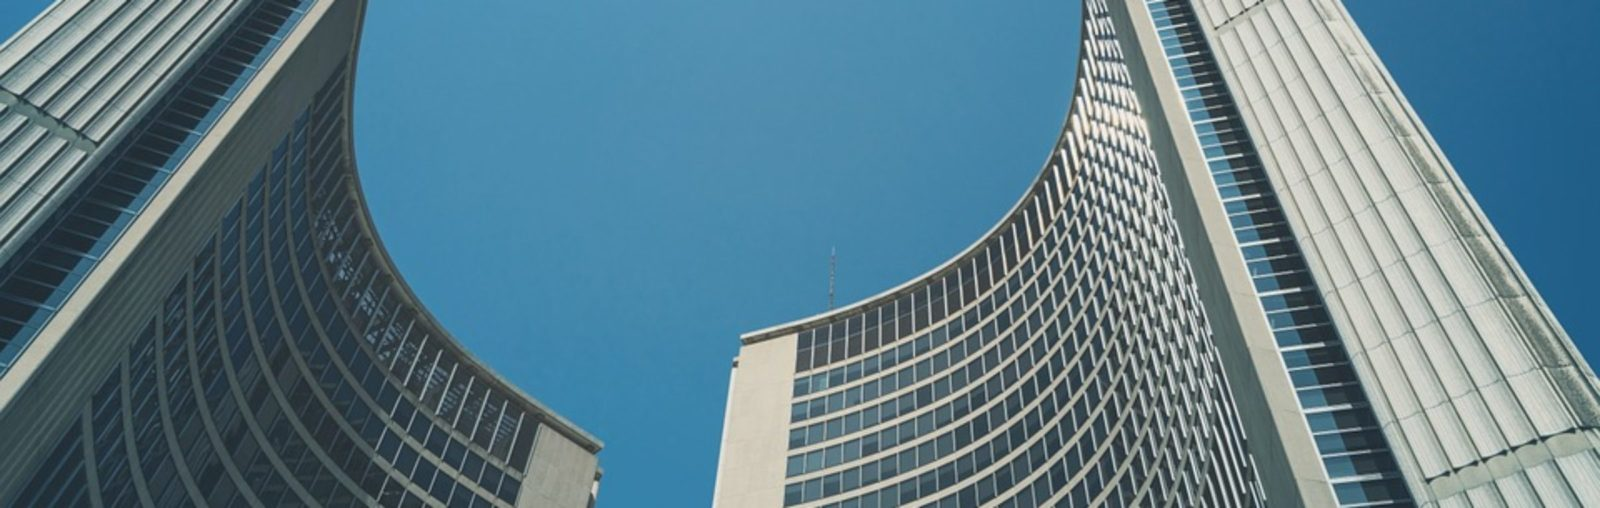 cropped toronto city hall px 1 1600x508 - How to Pick the Best High-Rise Window Cleaning Company